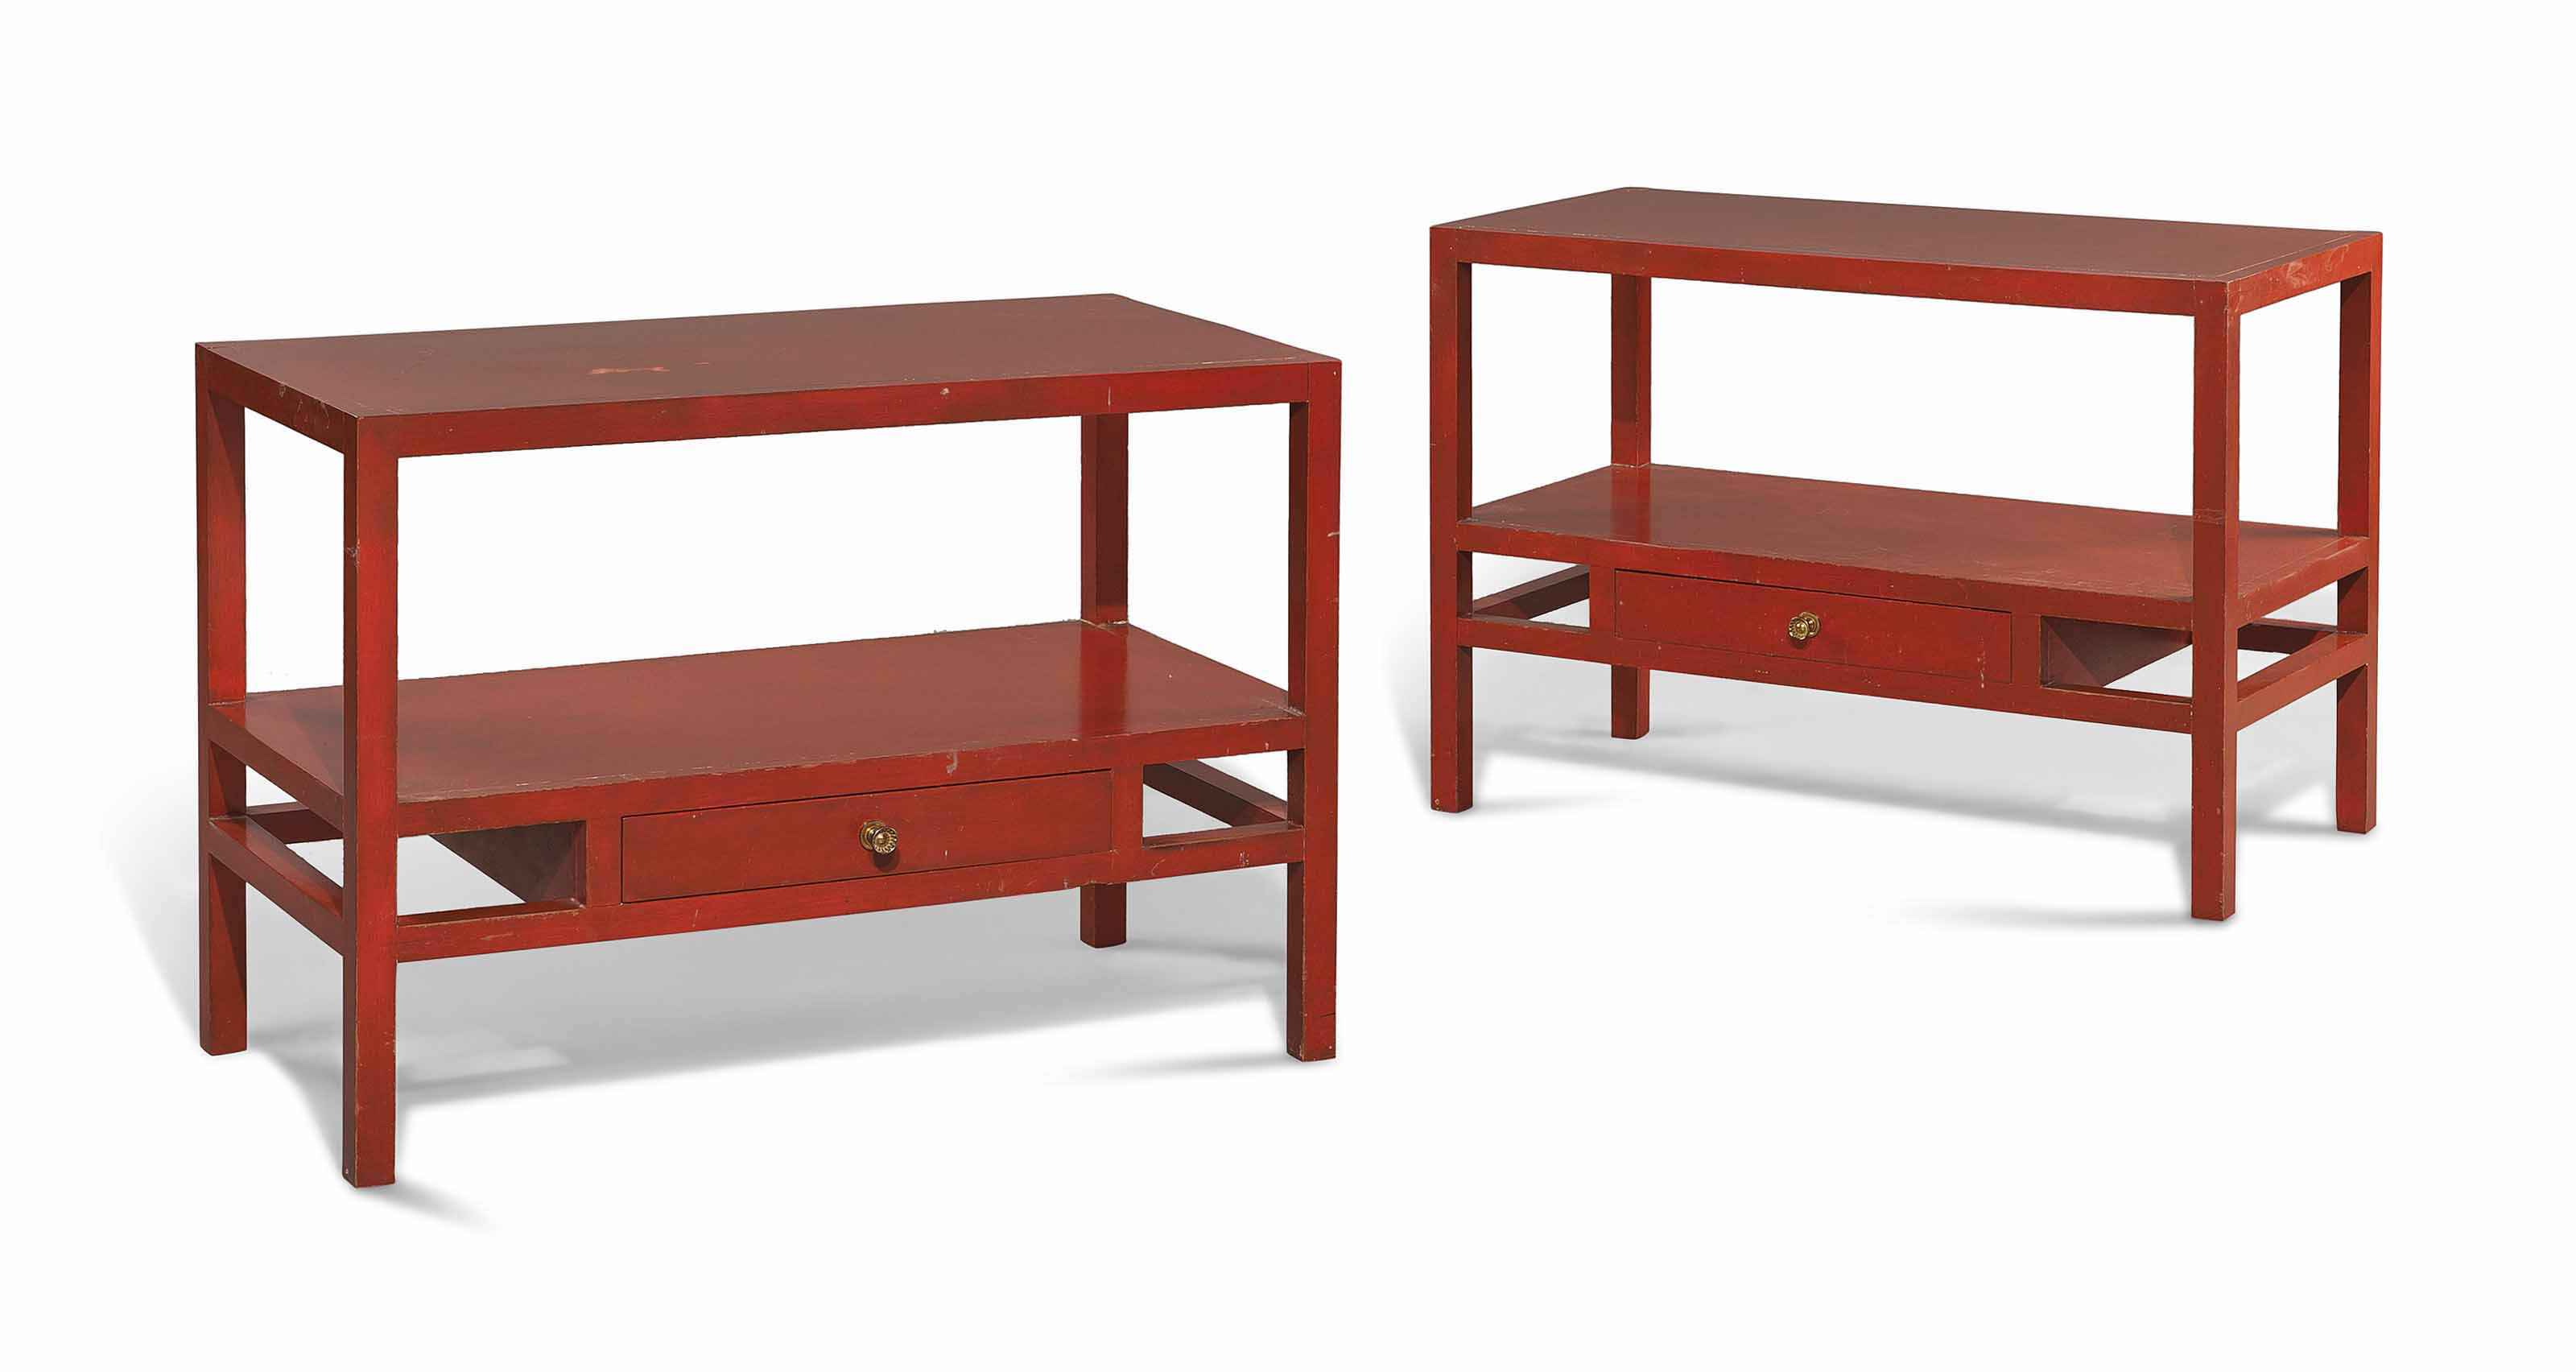 A PAIR OF RED-PAINTED LOW SIDE TABLES